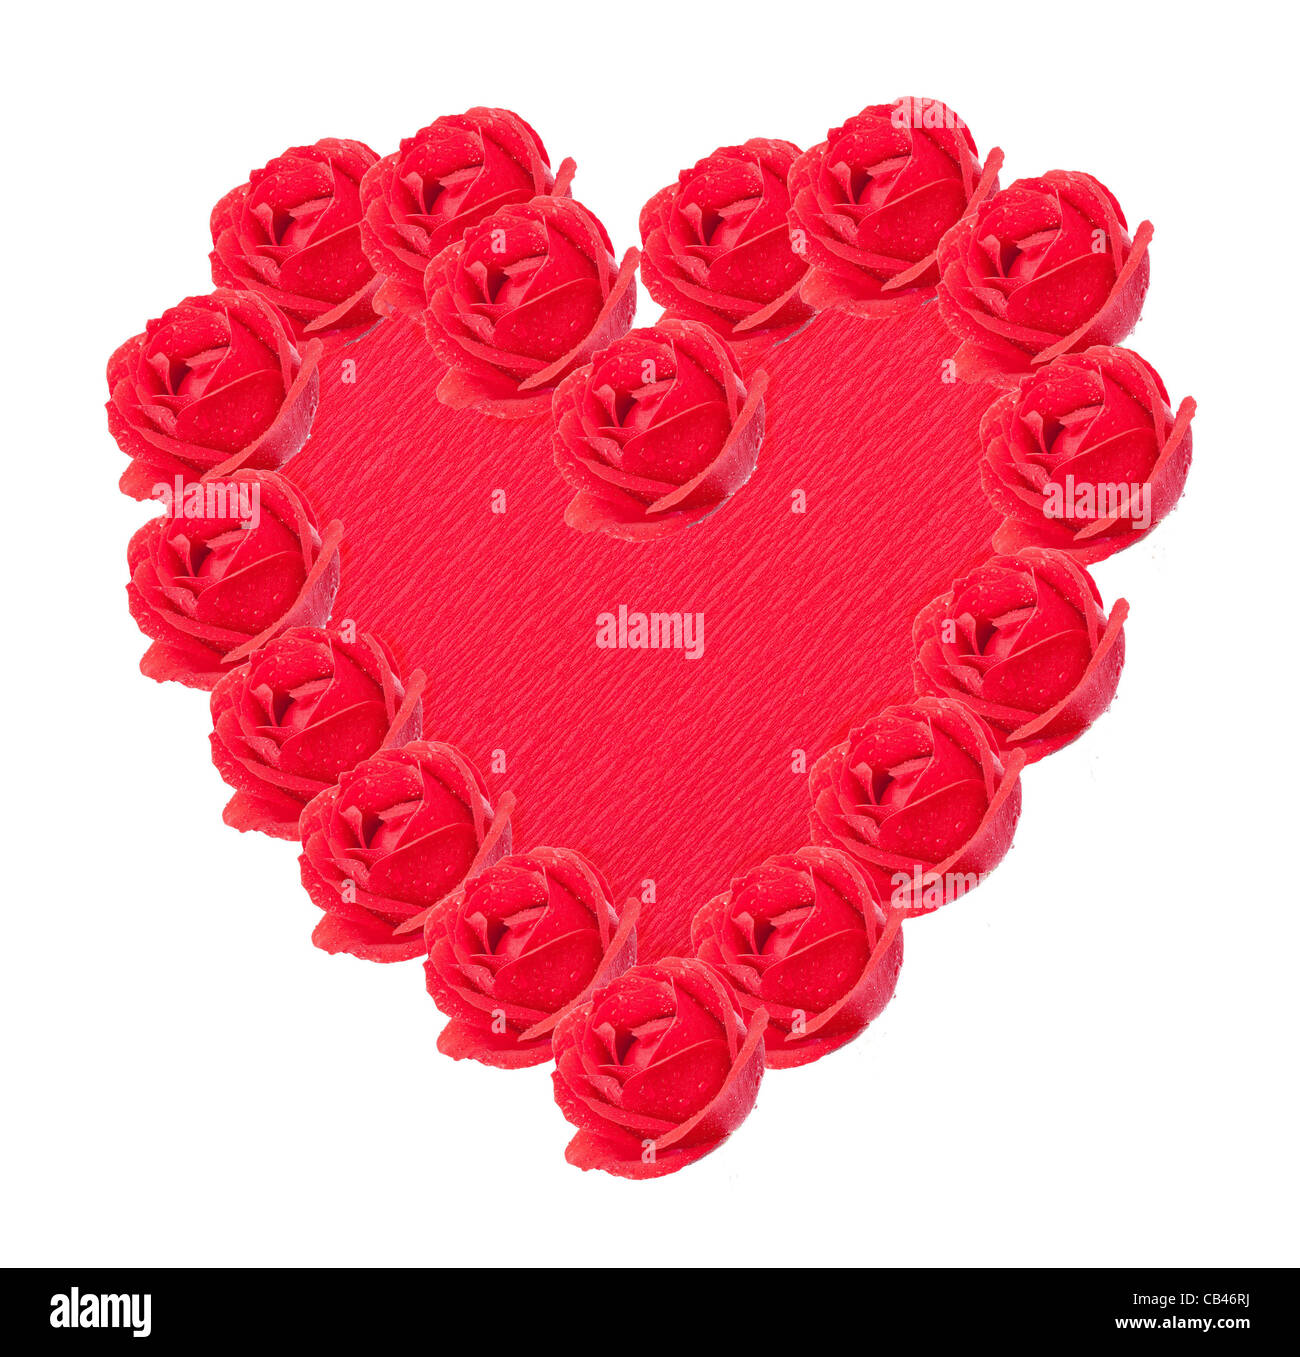 Red heart with roses - Stock Image